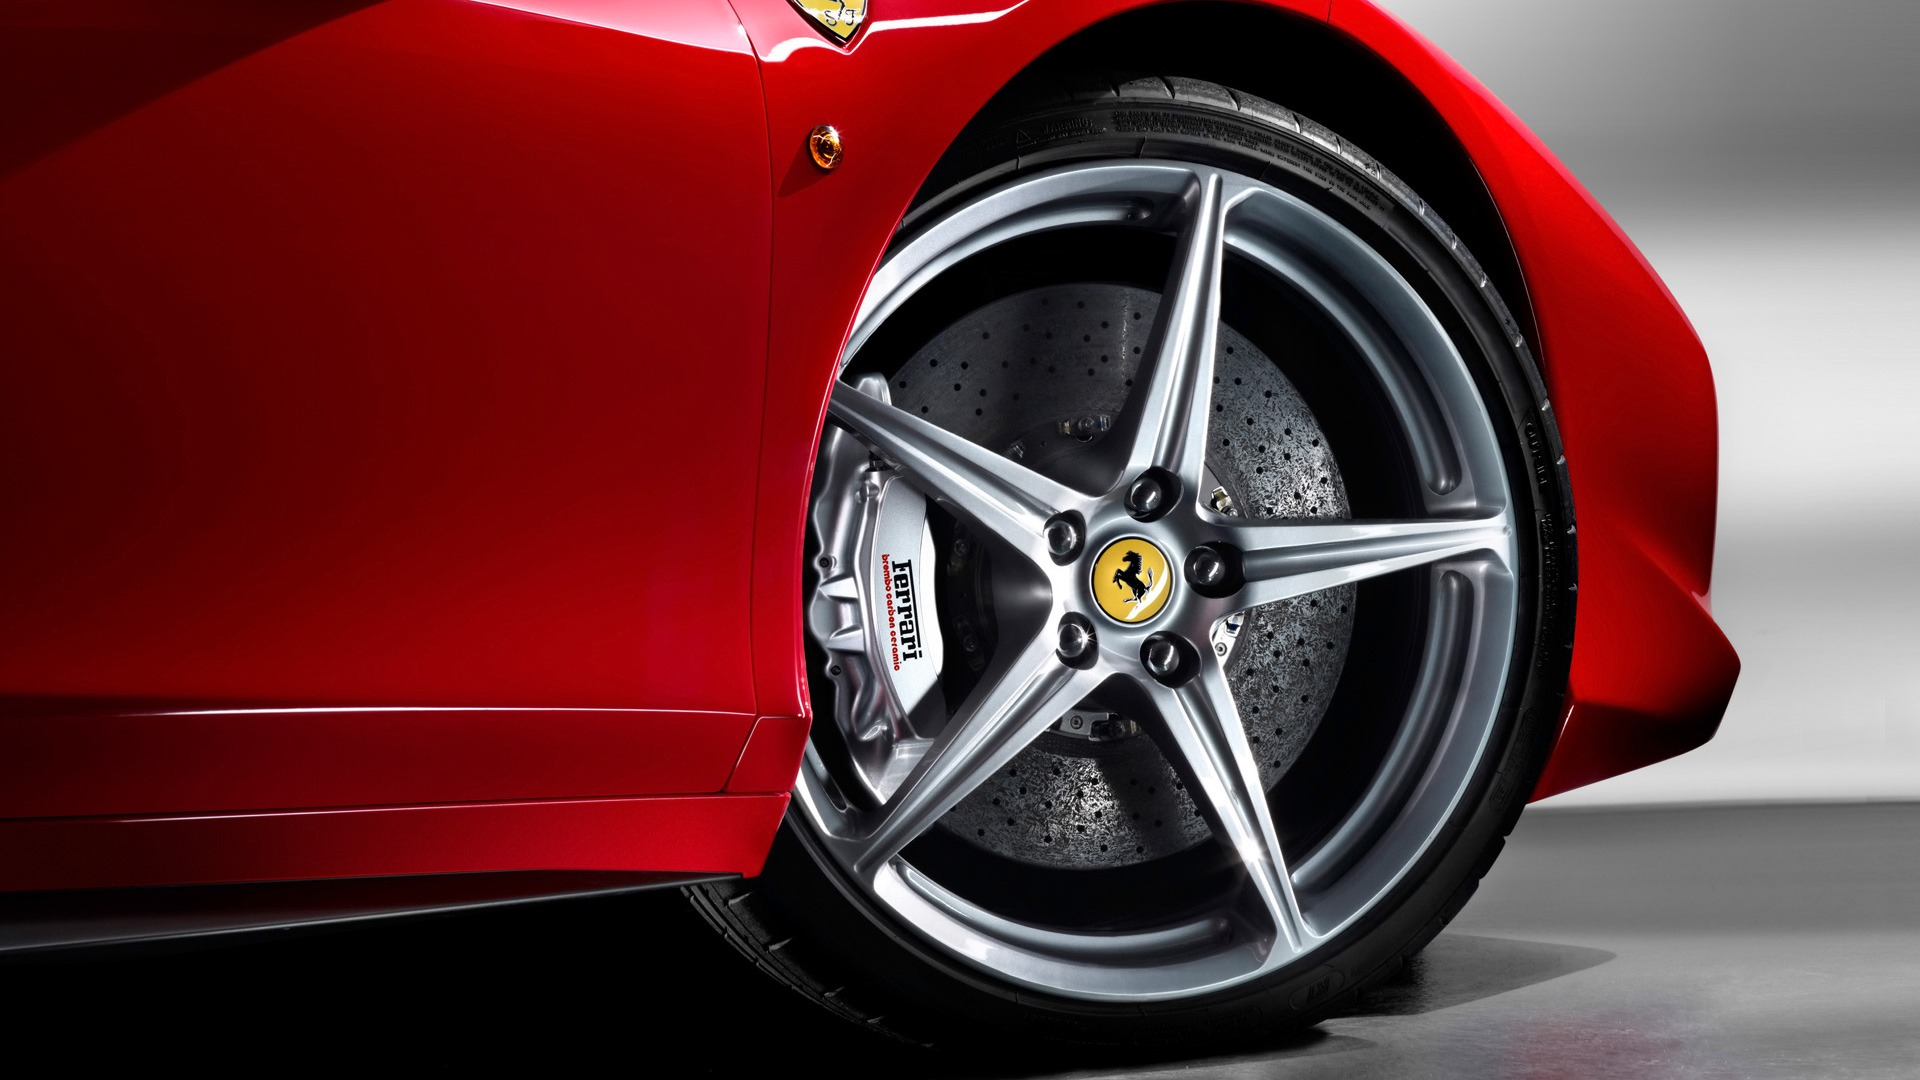 WallpapersWide Ferrari Emblem HD p Wallpapers Download  Forza Ferrari 1920x1080